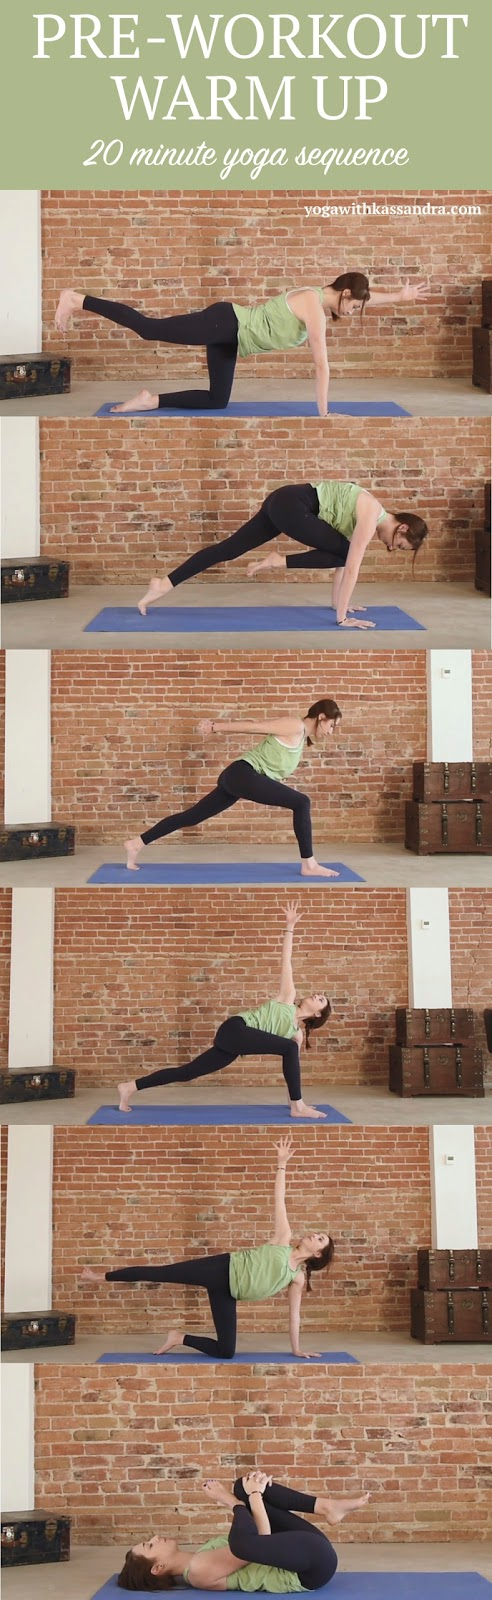 how to warm up and prepare the body for yoga